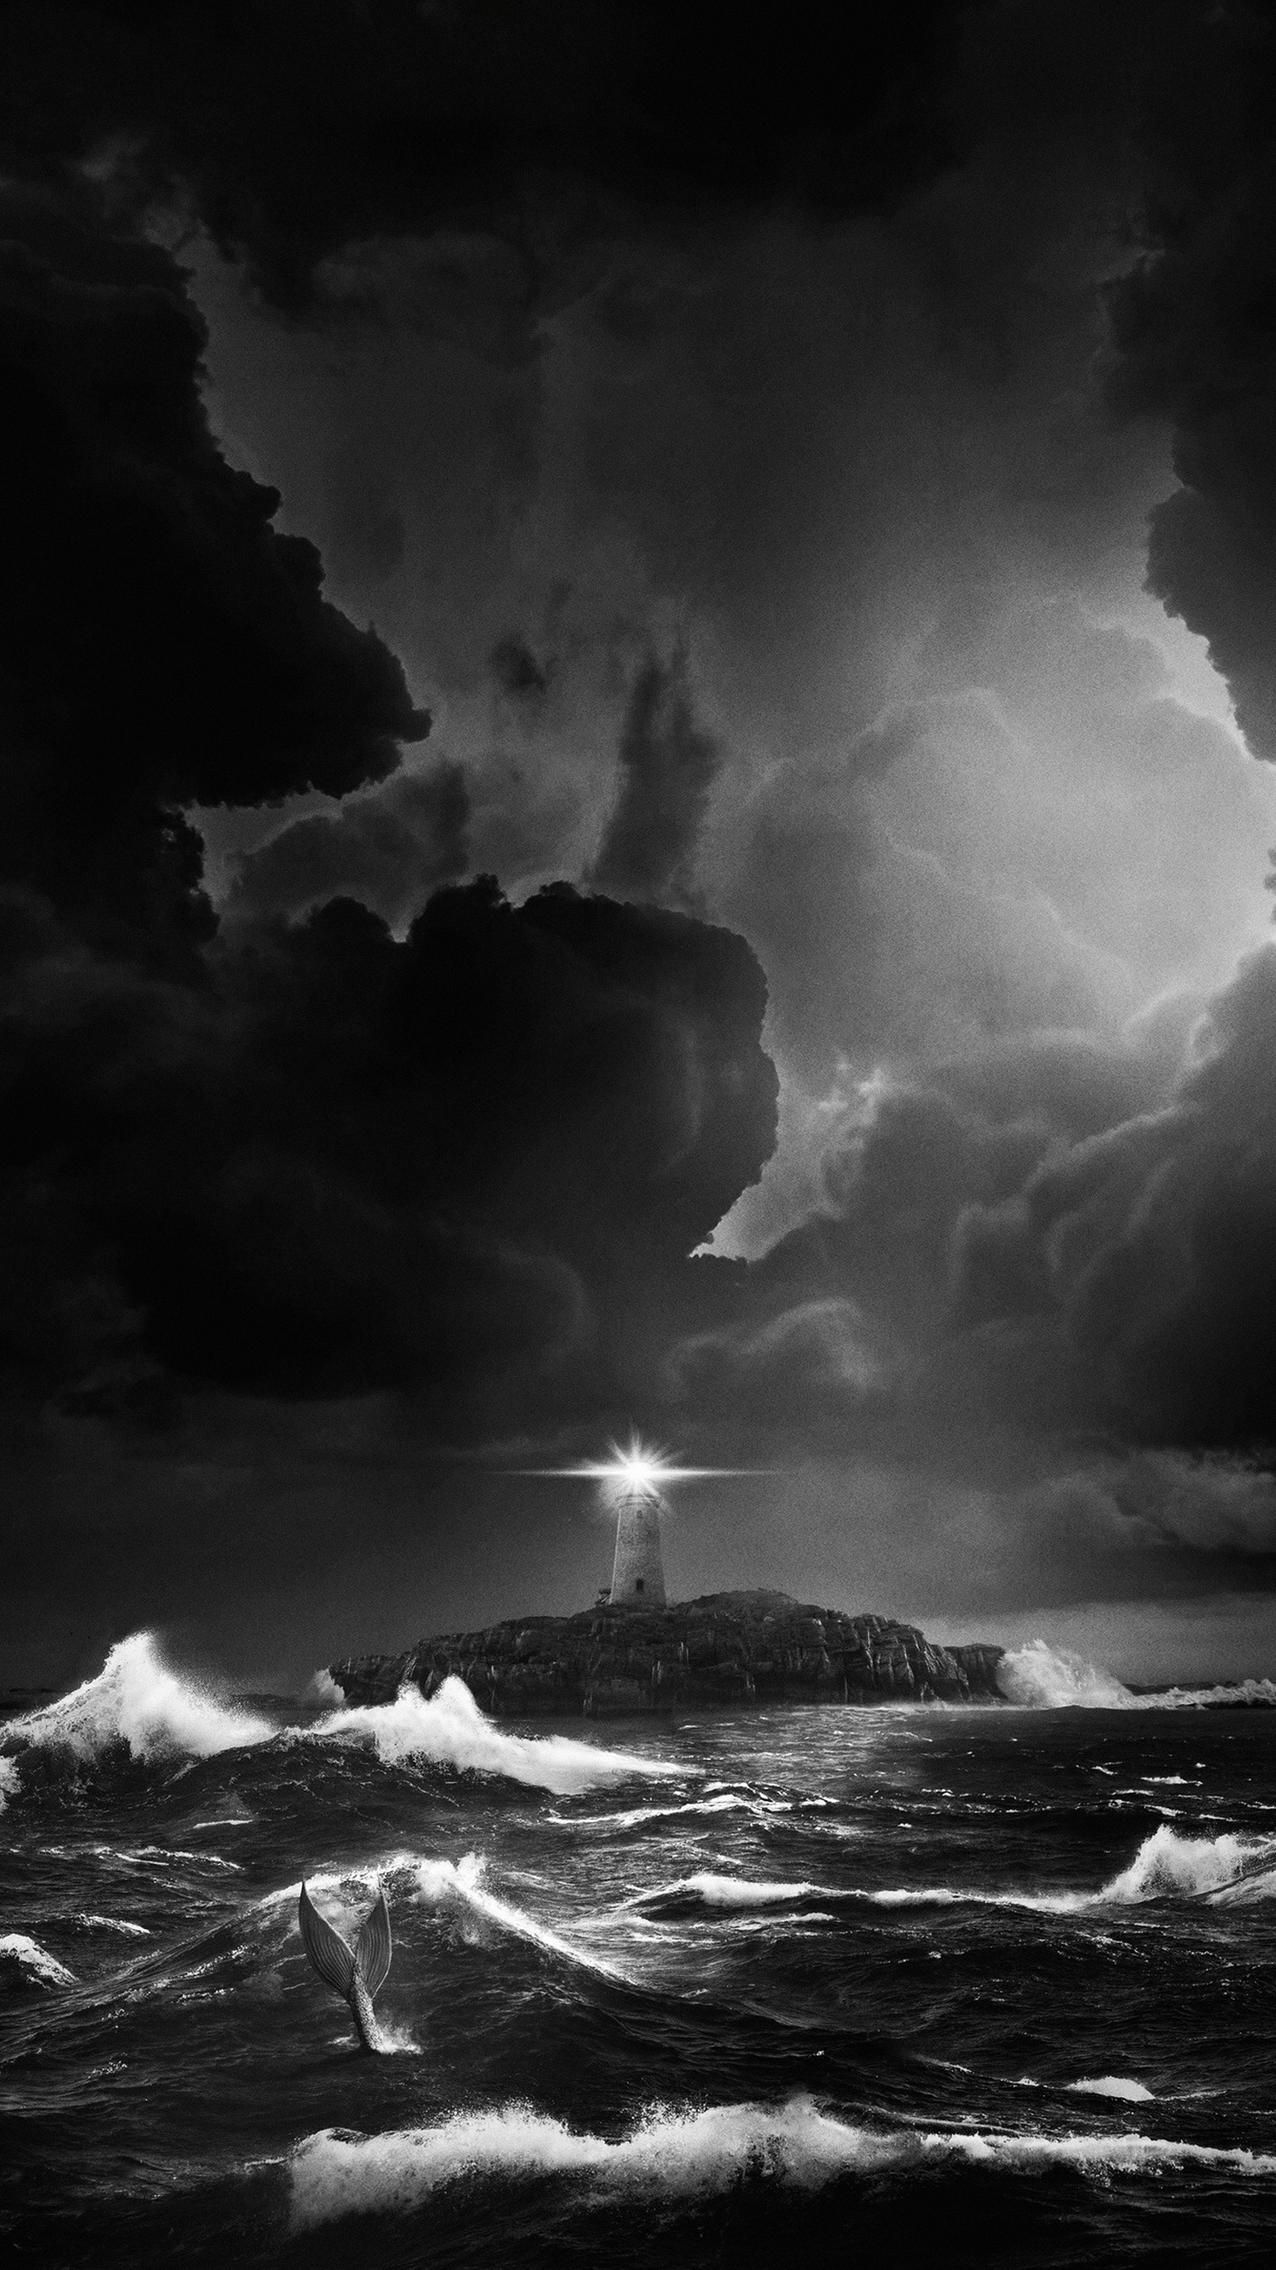 The Lighthouse 2019 Phone Wallpaper Moviemania In 2020 Lighthouse Movie Movie Wallpapers Phone Wallpaper